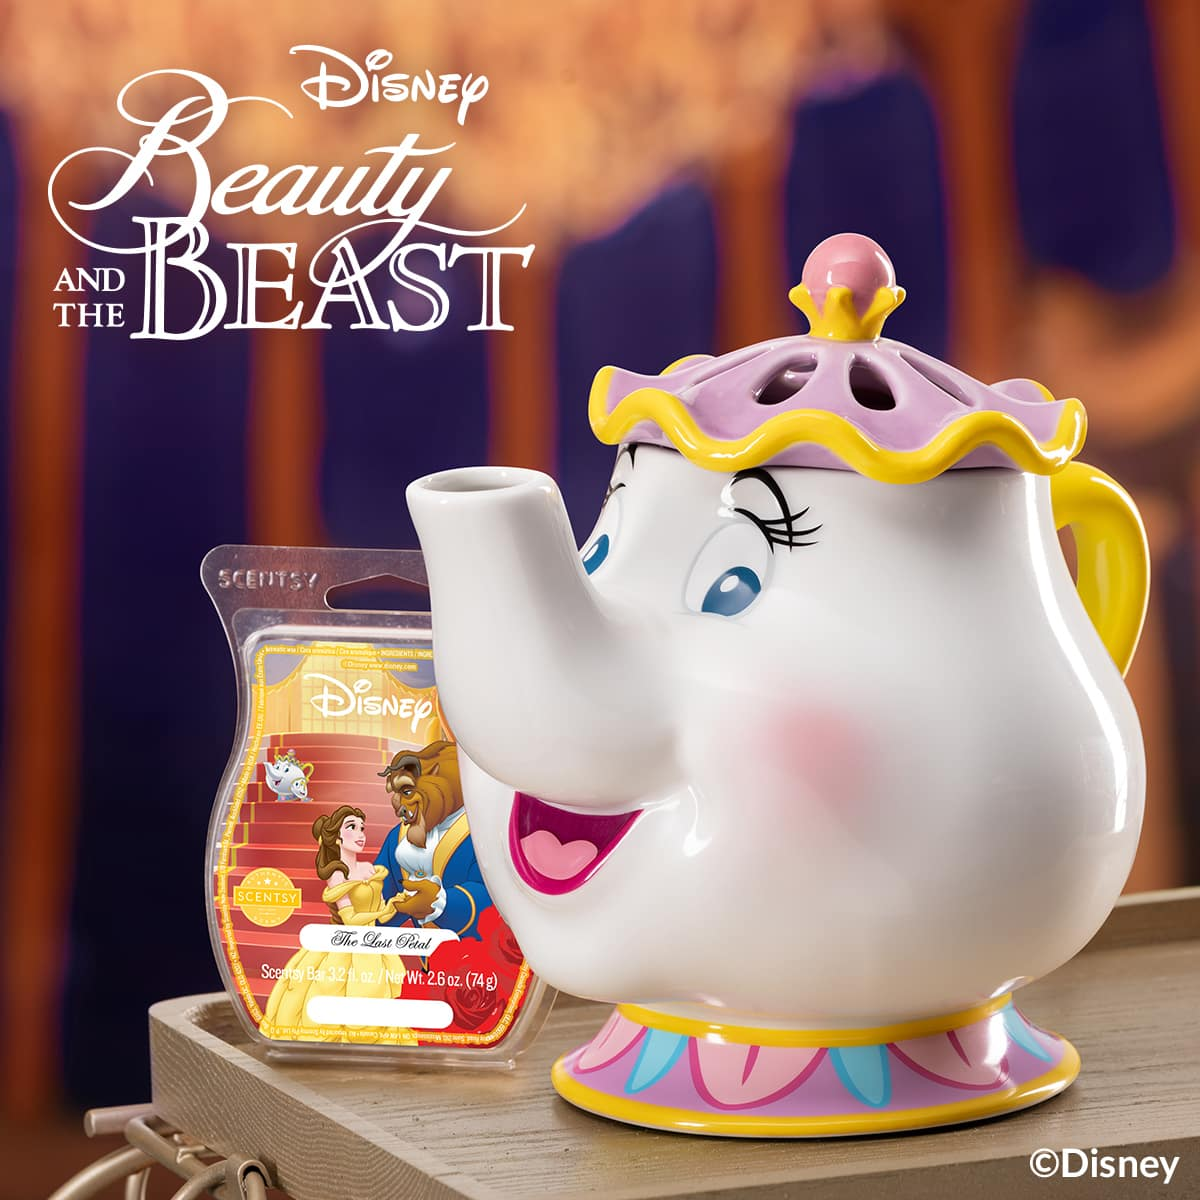 BEAUTY AND THE BEAST MRS POTTS | NEW! Beauty & The Beast Scentsy Collection | Mrs. Potts & Chip the Teacup Scentsy Warmers | Shop Now